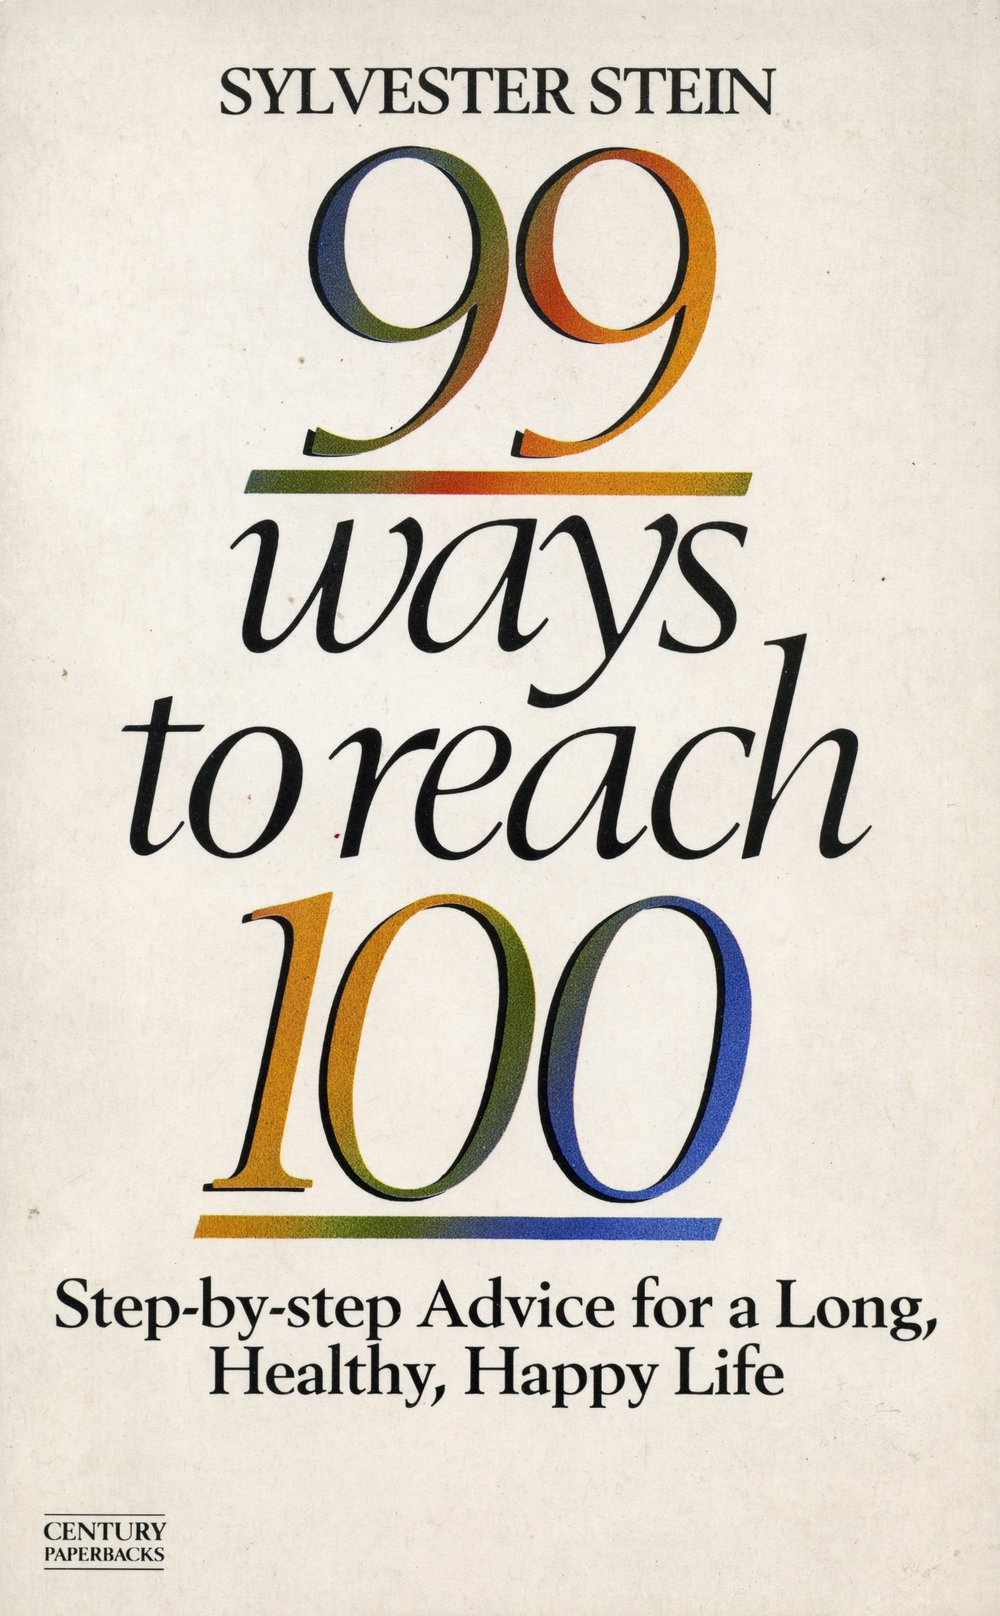 99 Ways To Reach 100 -